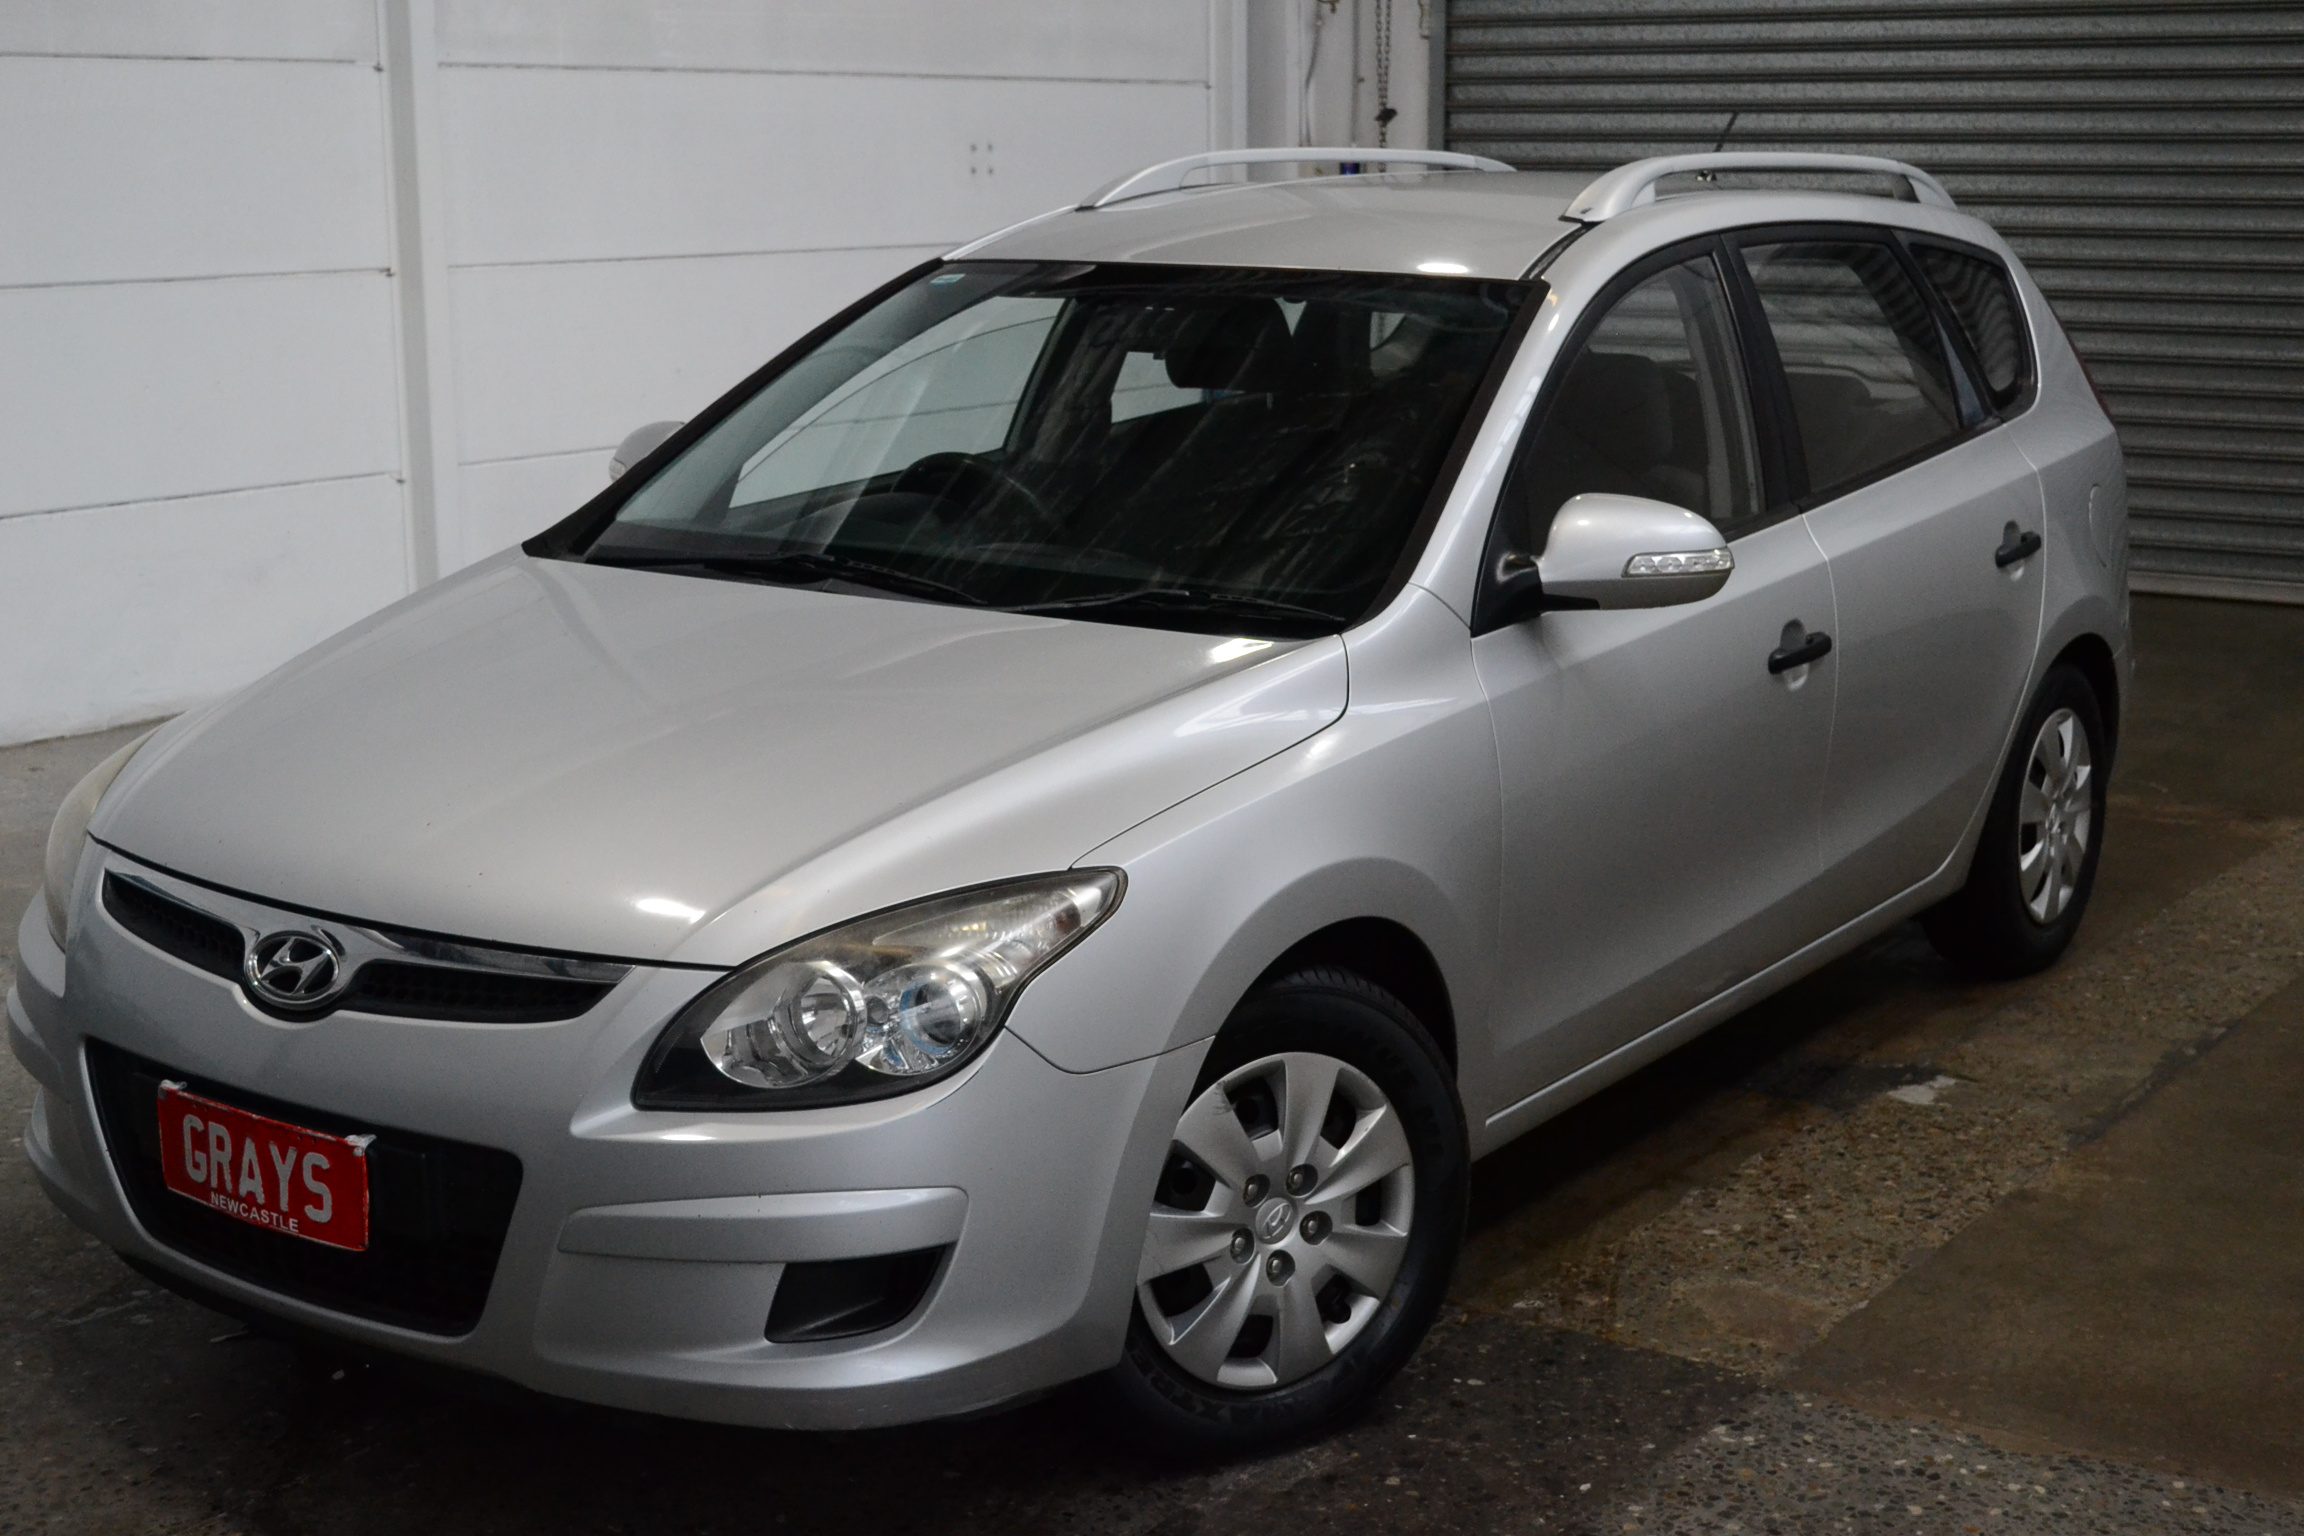 2011 Hyundai i30 cw SX 1.6 CRDi FD Turbo Diesel Manual Wagon